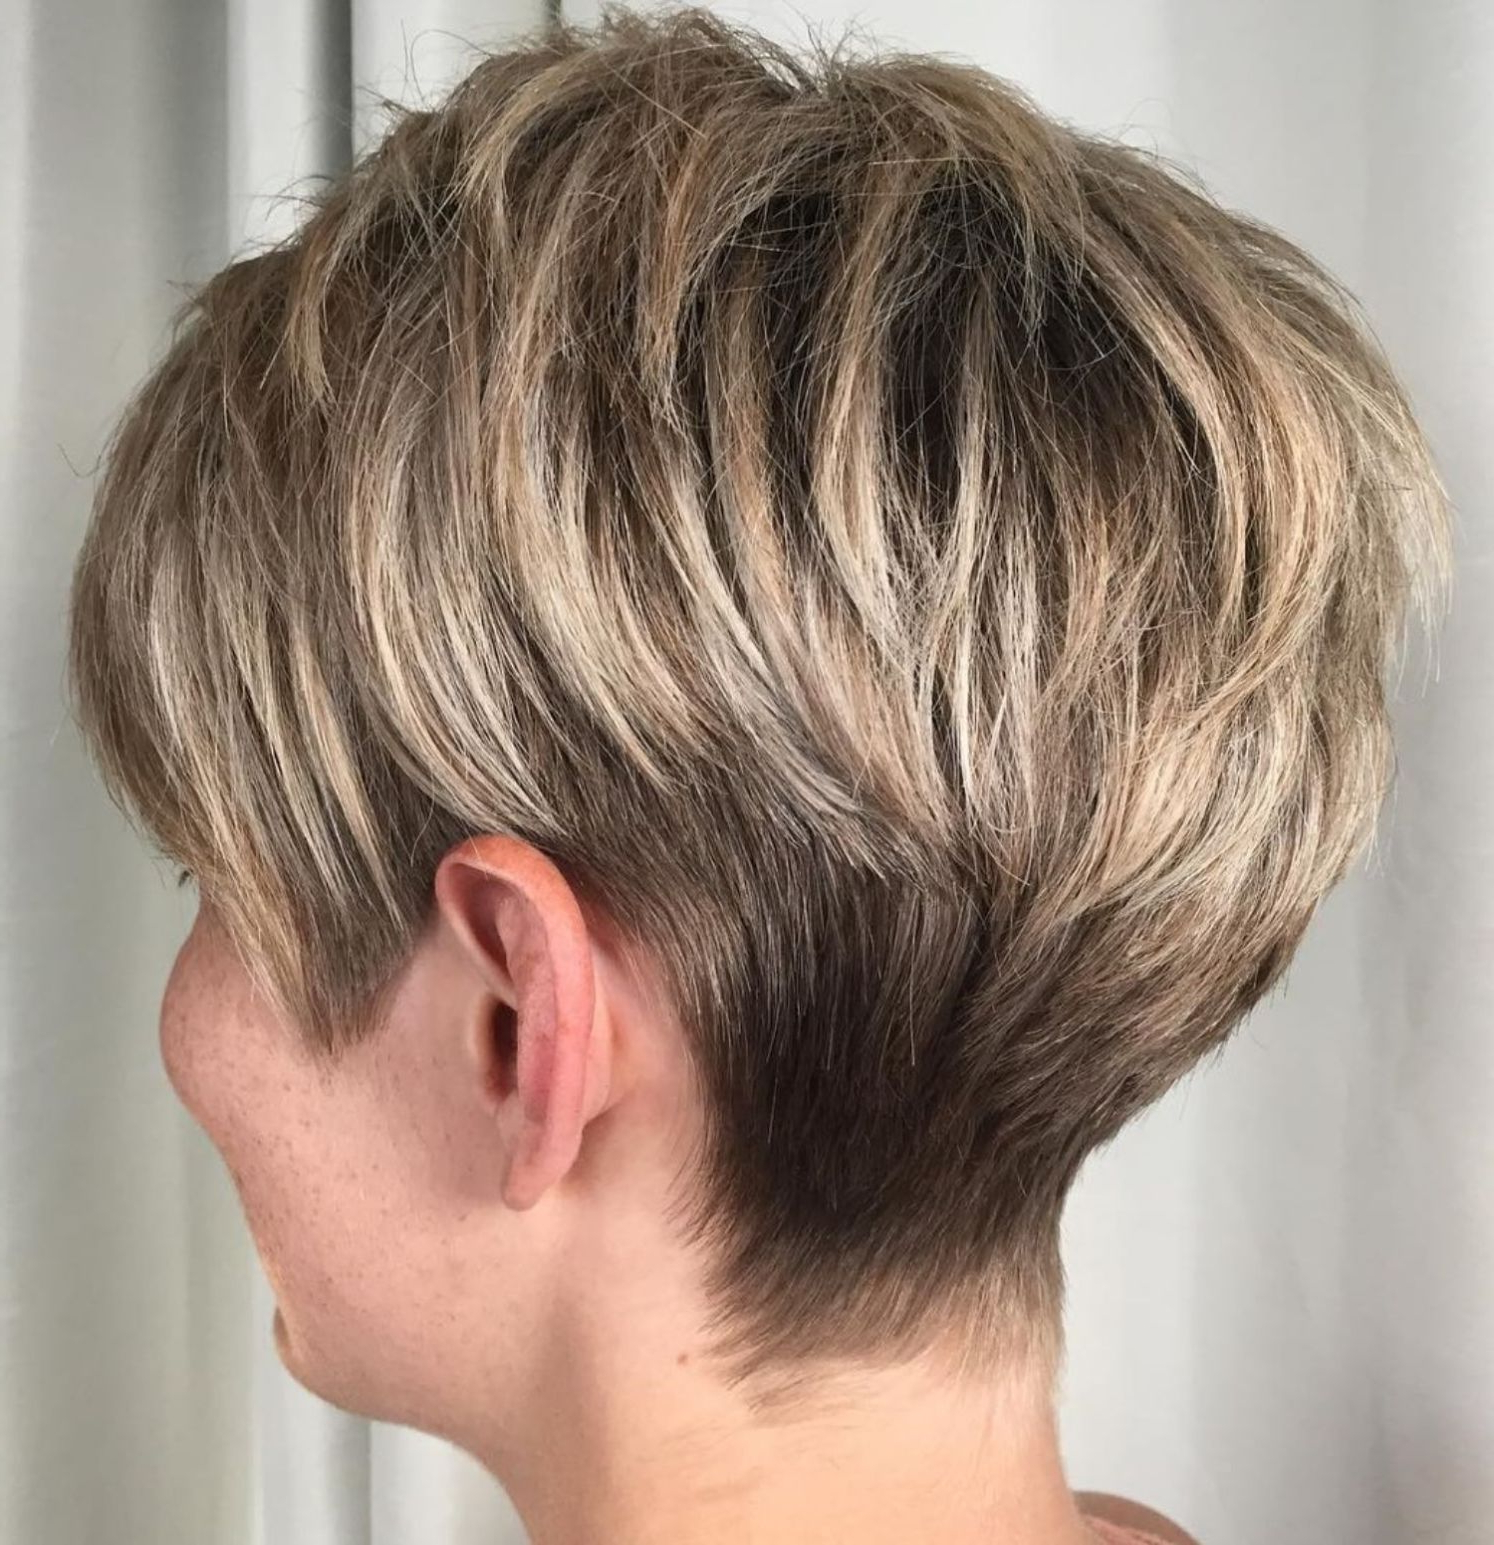 60 Classy Short Haircuts And Hairstyles For Thick Hair | Health N Regarding Layered Tapered Pixie Hairstyles For Thick Hair (View 12 of 20)